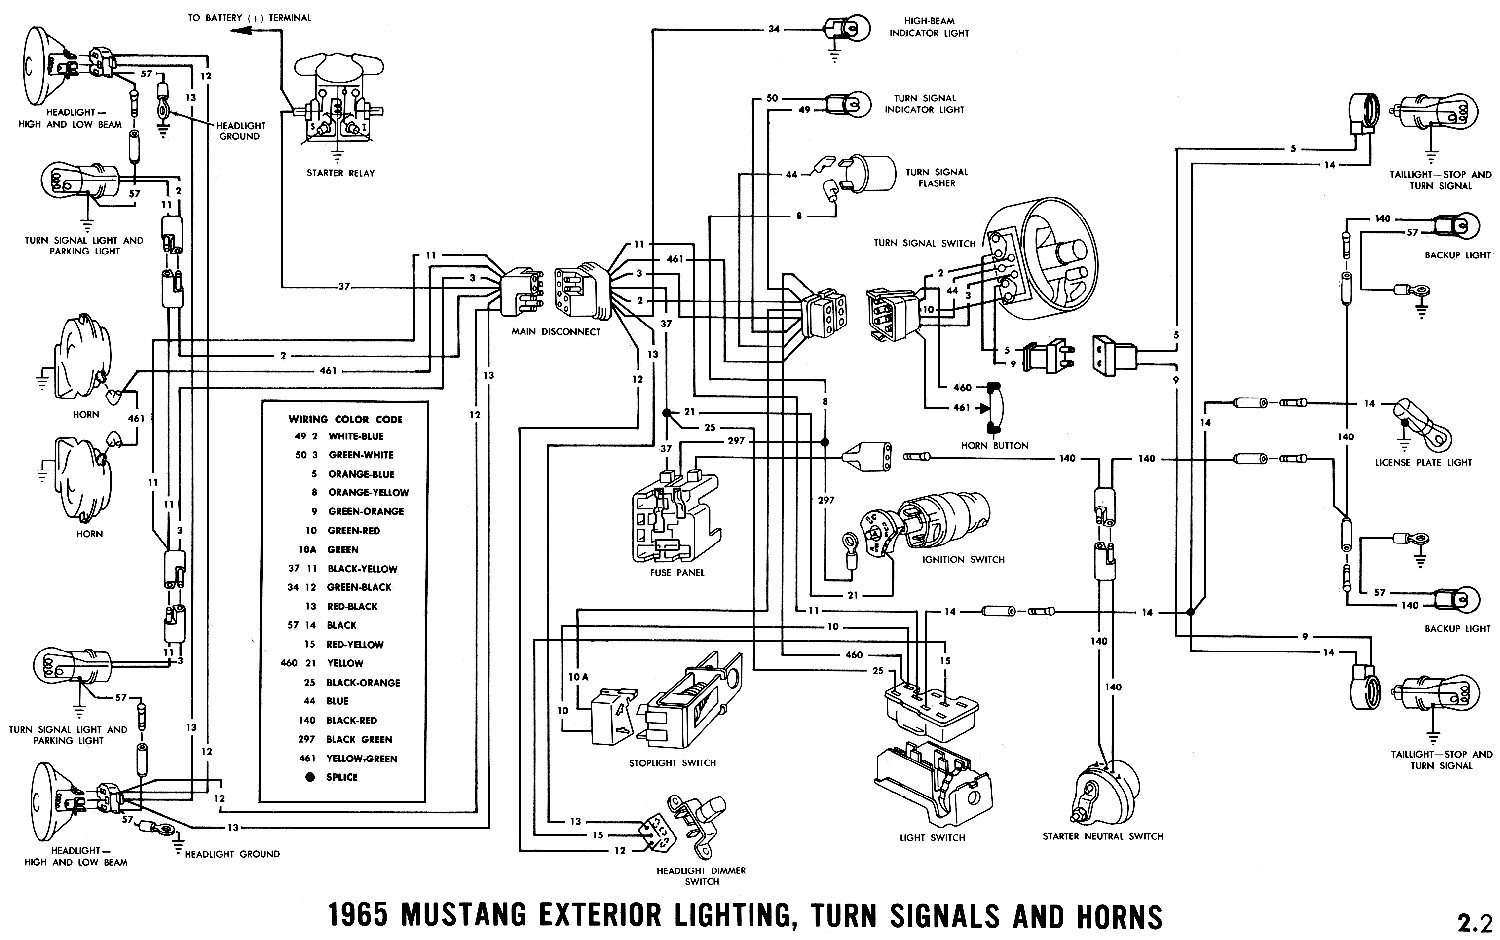 Explorer Sport Radio Wiring Diagram Further Mustang Mach 460 Ford Steering Column Free 1965 Marker Light Library Rh 4 Akszer Eu F100